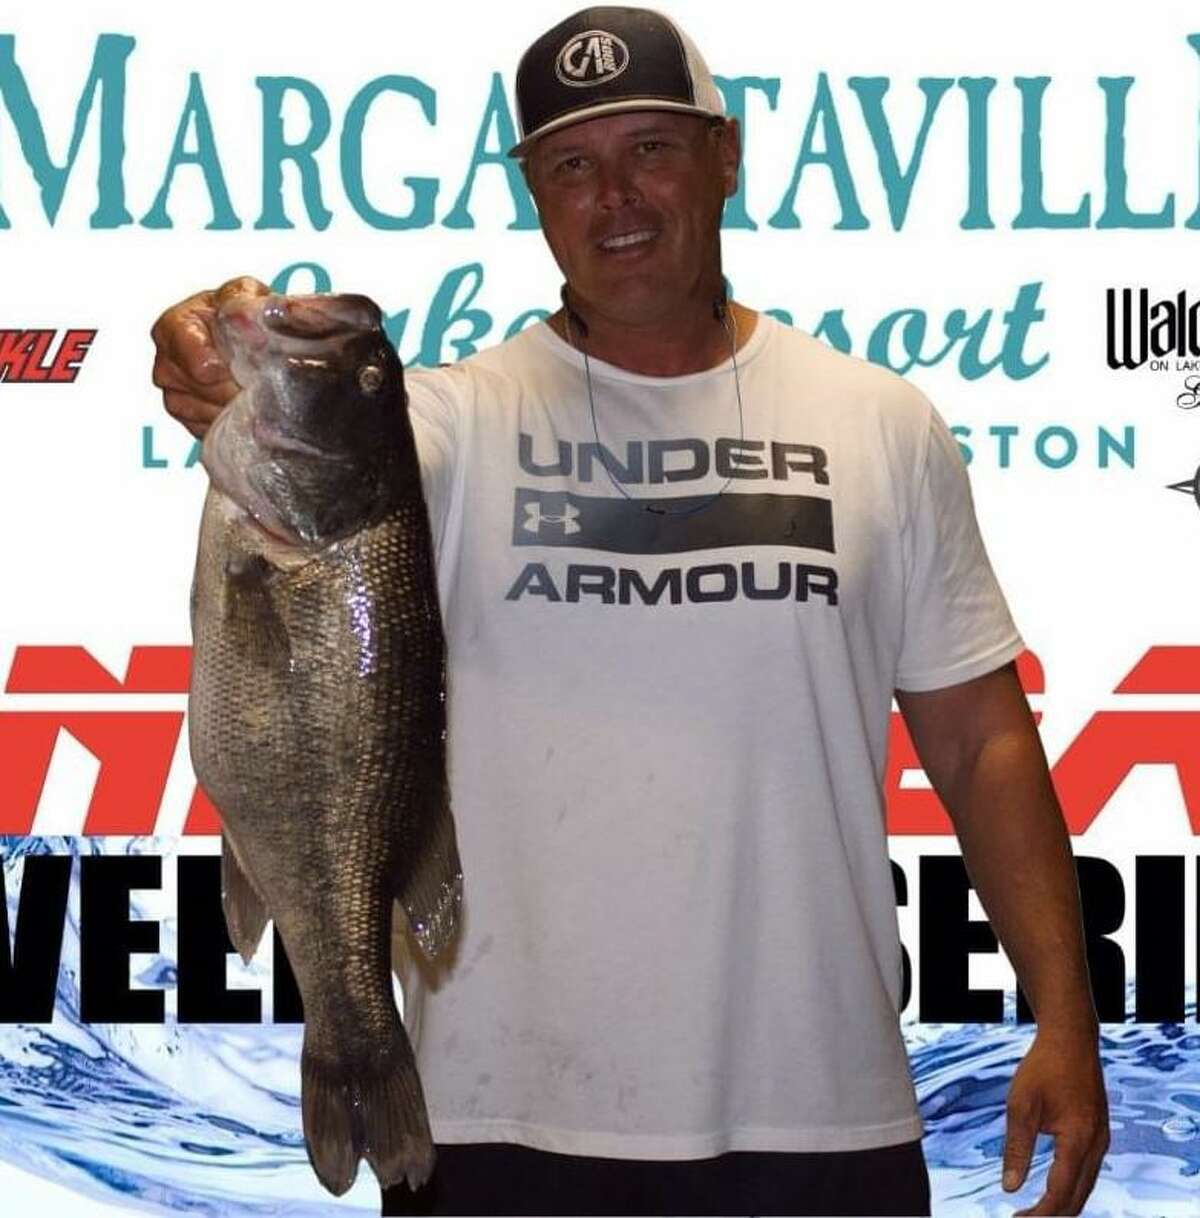 Ronnie Wagner came in third place in the CONROEBASS Thursday Big Bass Tournament with a weight of 6.22 pounds.